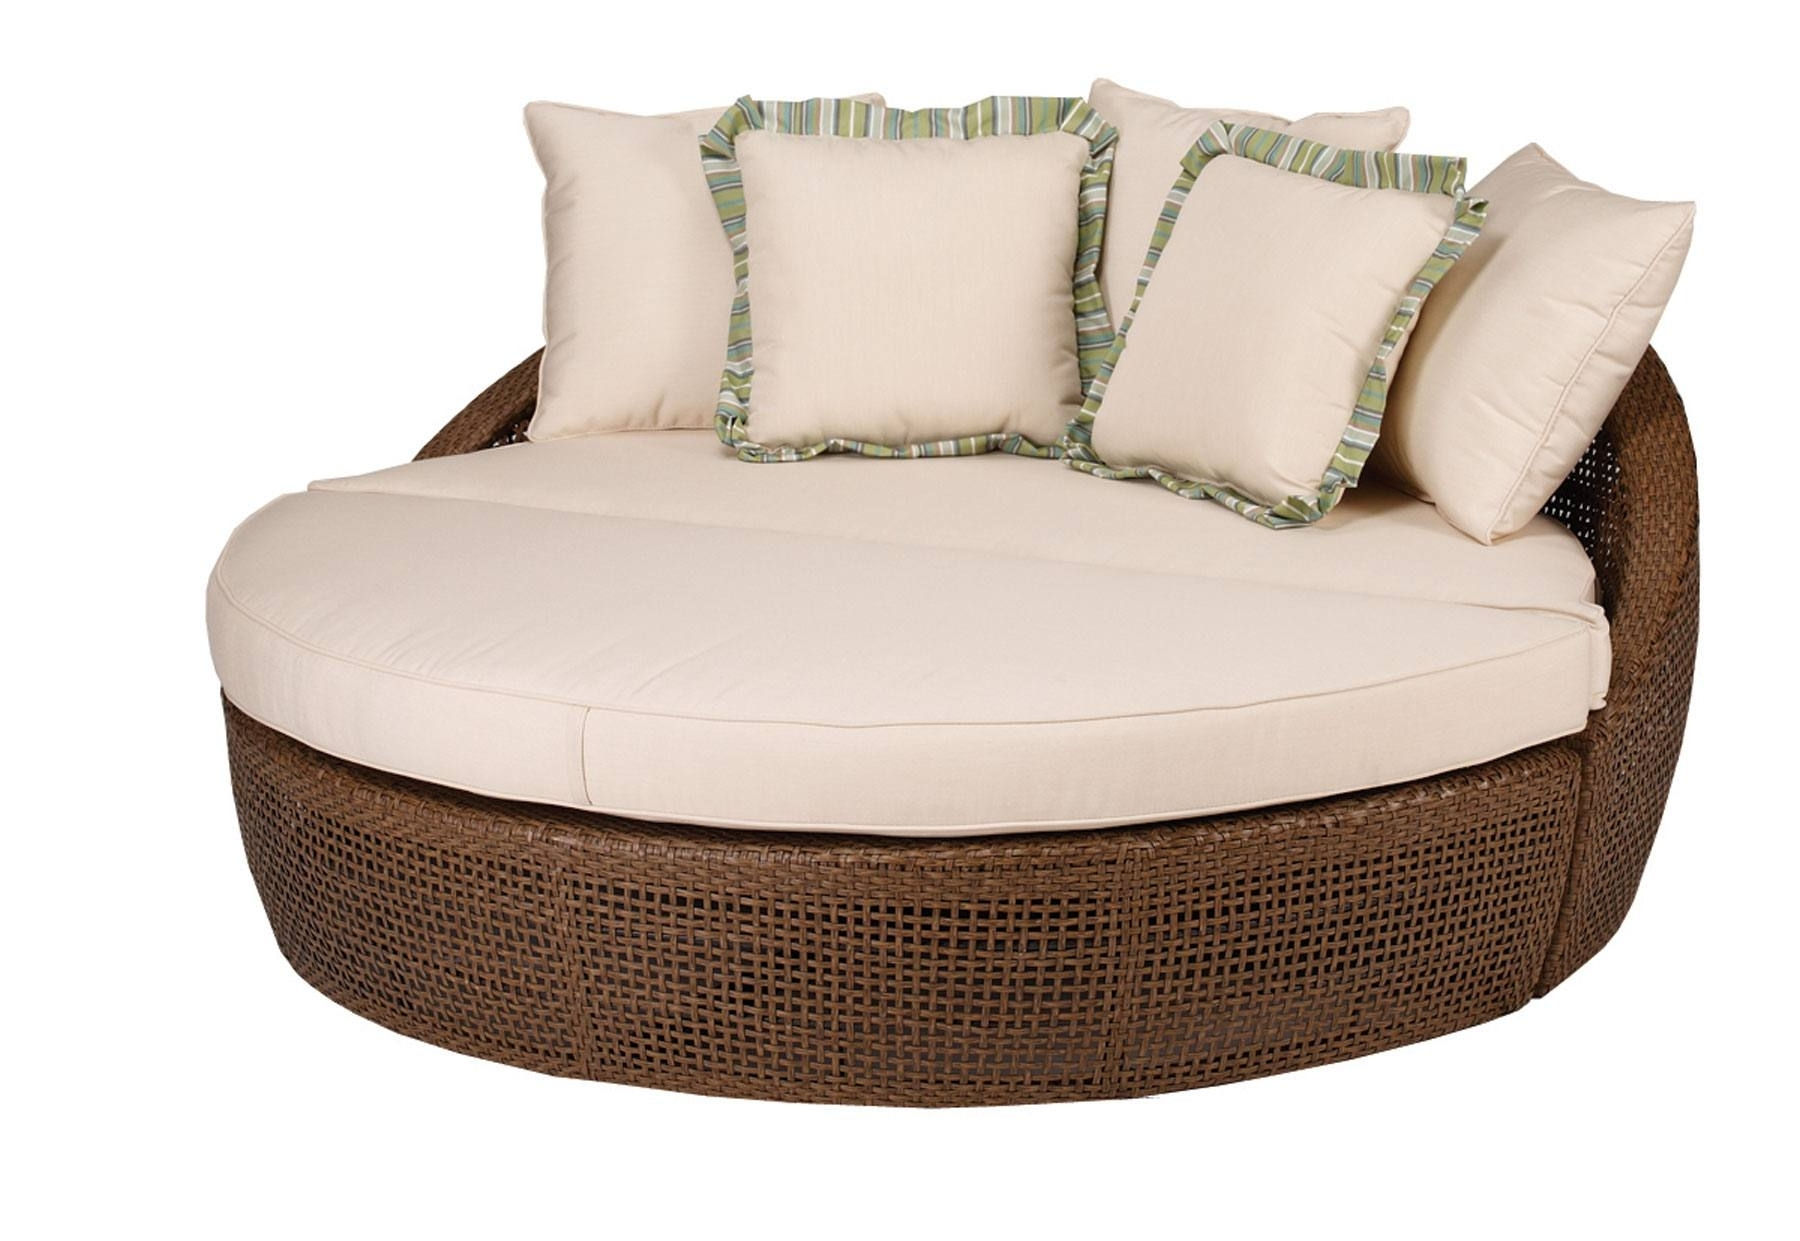 Round Chaise Lounge Chairs • Lounge Chairs Ideas With Current Round Chaise Lounges (View 8 of 15)